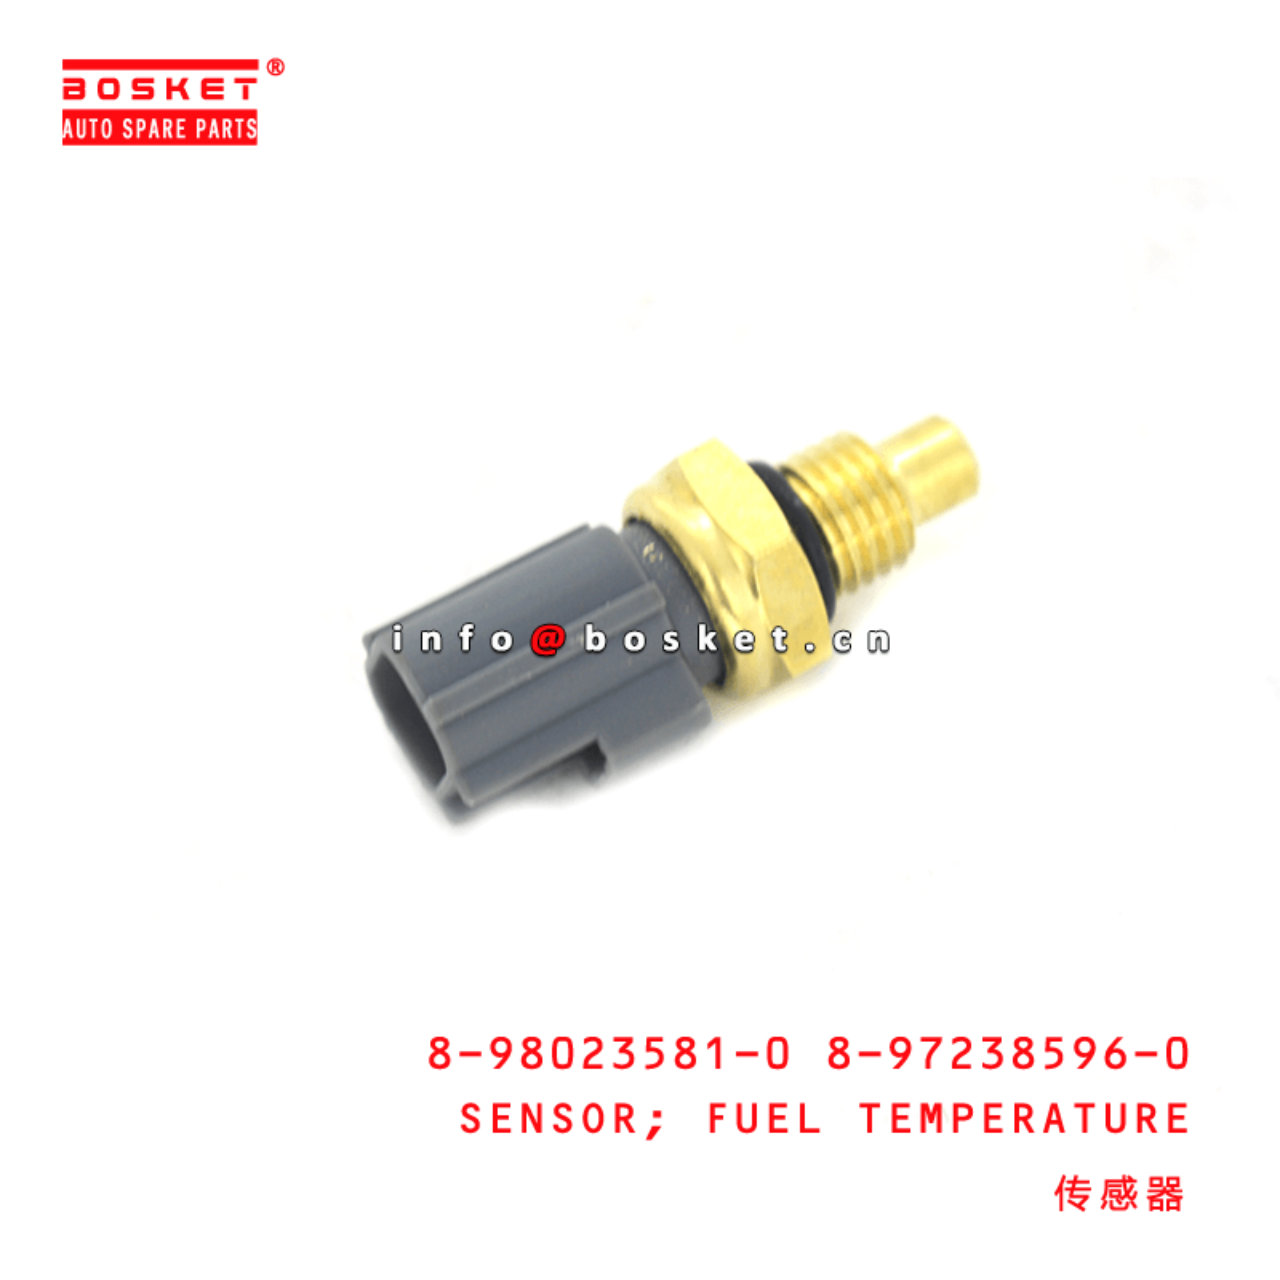 8-98023581-0 8-97238596-0 Fuel Temperature Sensor 8980235810 8972385960 Suitable for ISUZU XE 4JJ1 4